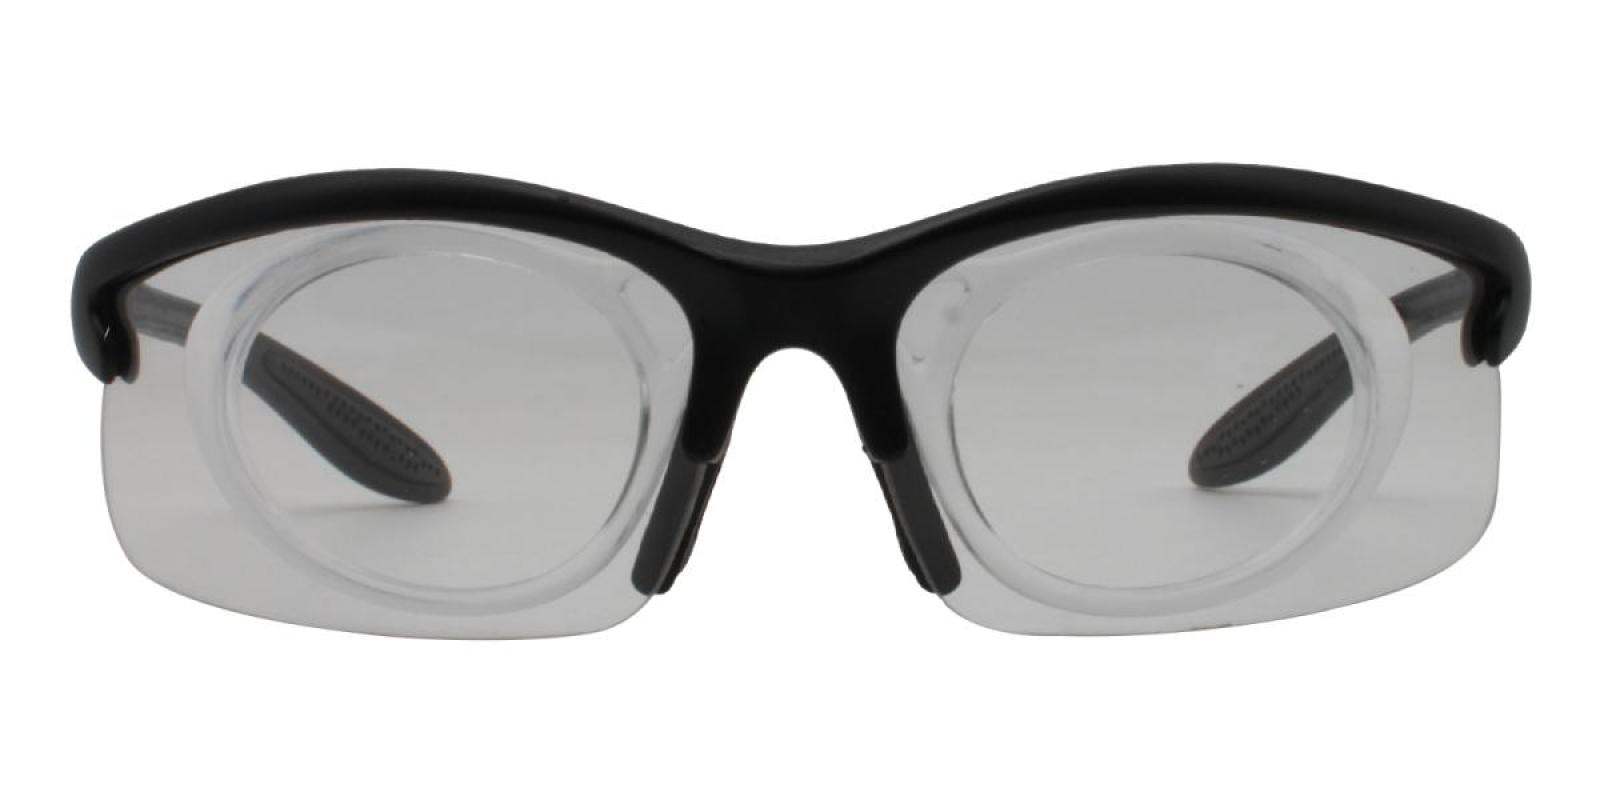 Borneo-Black-Square-Plastic-SportsGlasses-additional2